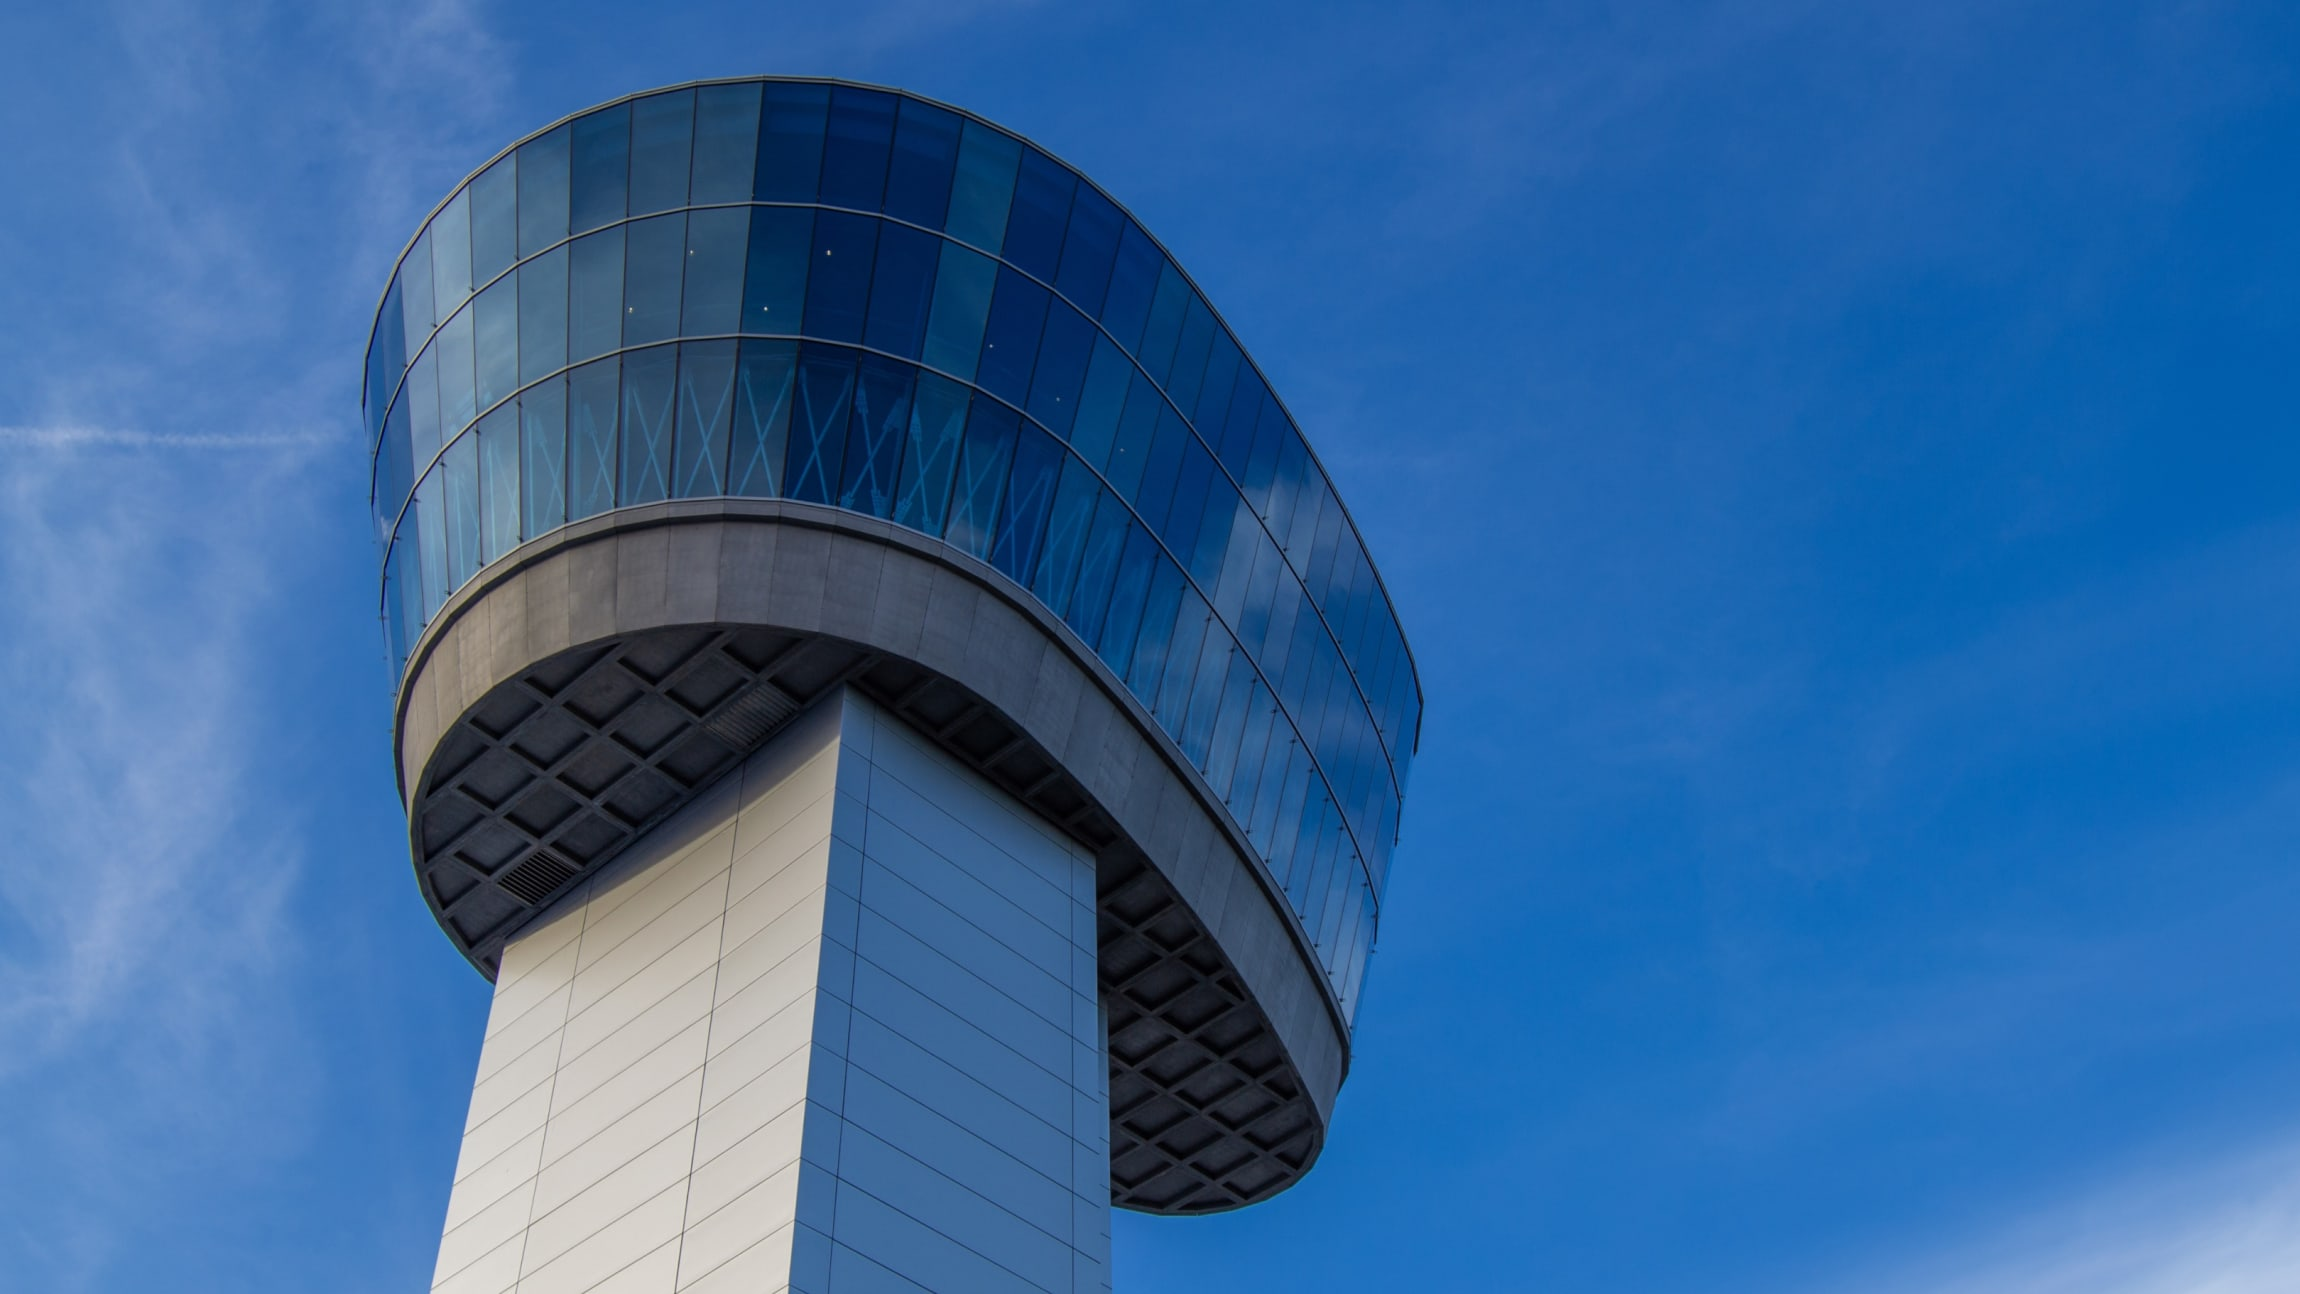 Air traffic controller station set against a blue sky.